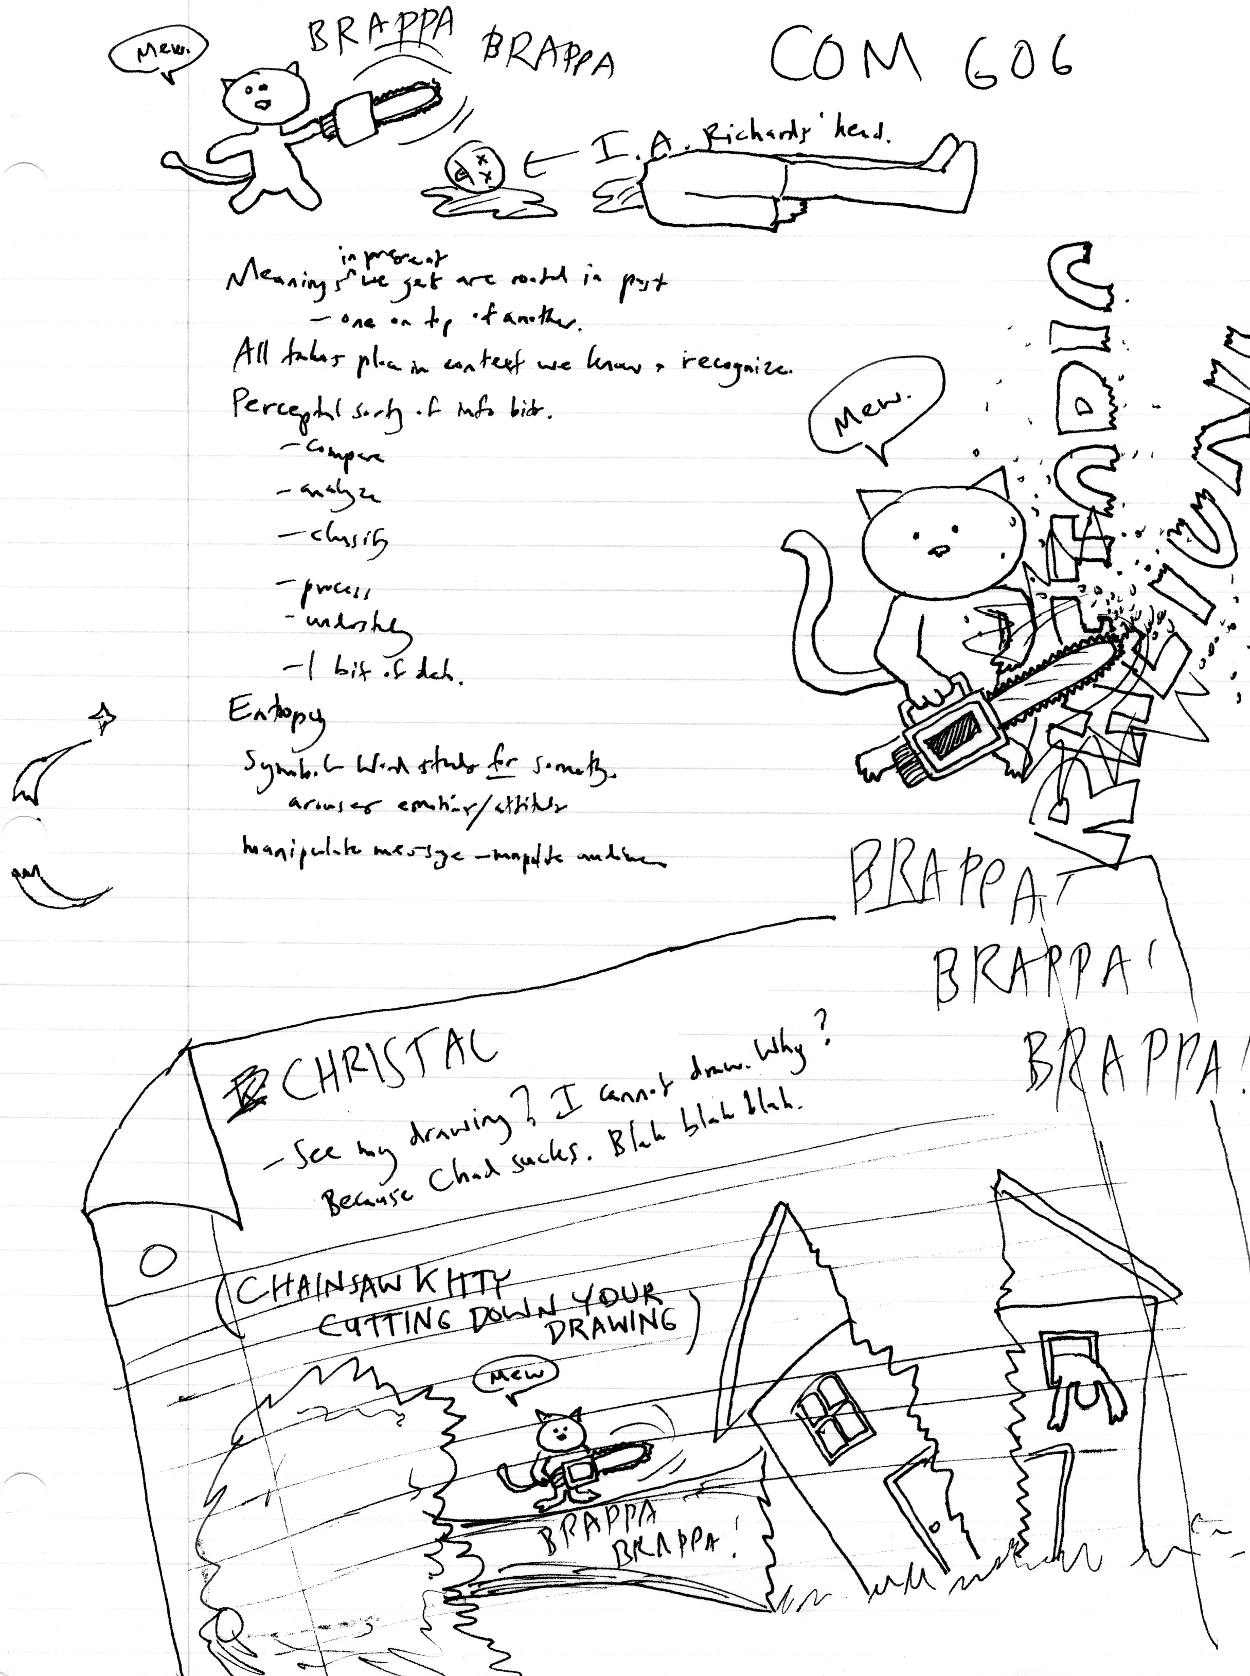 Rhetoric, I Loathed Thee: Let Me Count (and Draw) the Ways